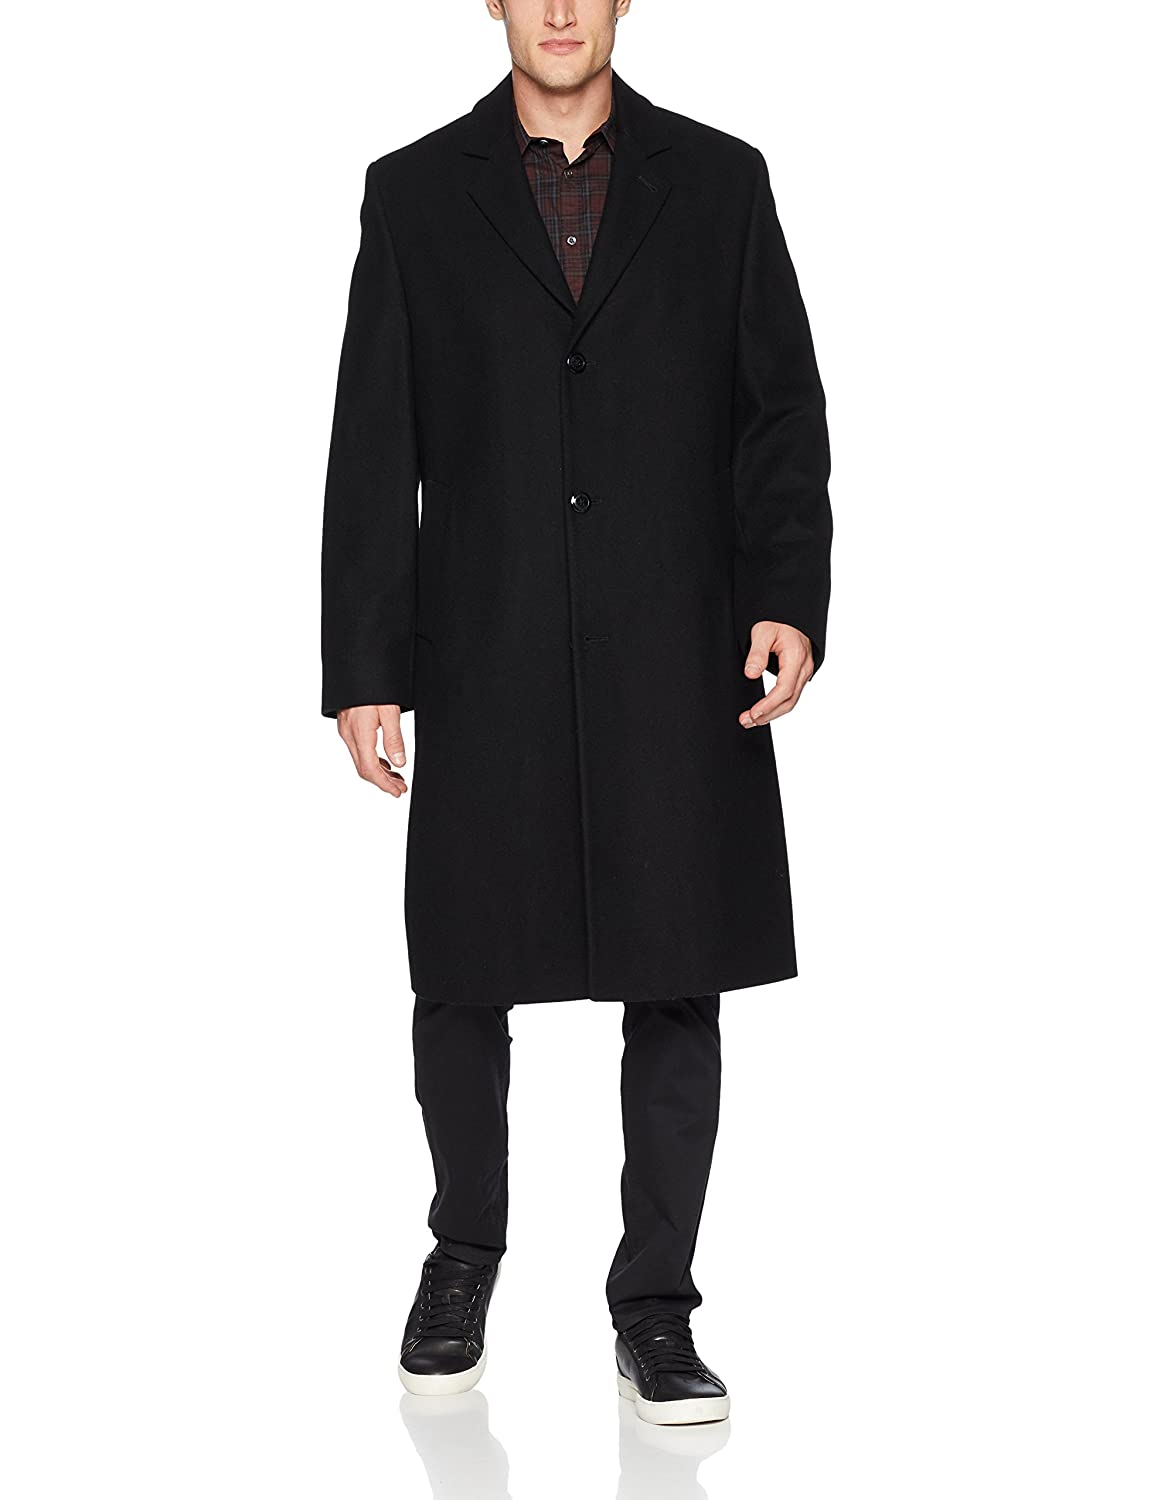 1950s Men's Clothing London Fog Mens Signature Wool Blend Top Coat $118.82 AT vintagedancer.com